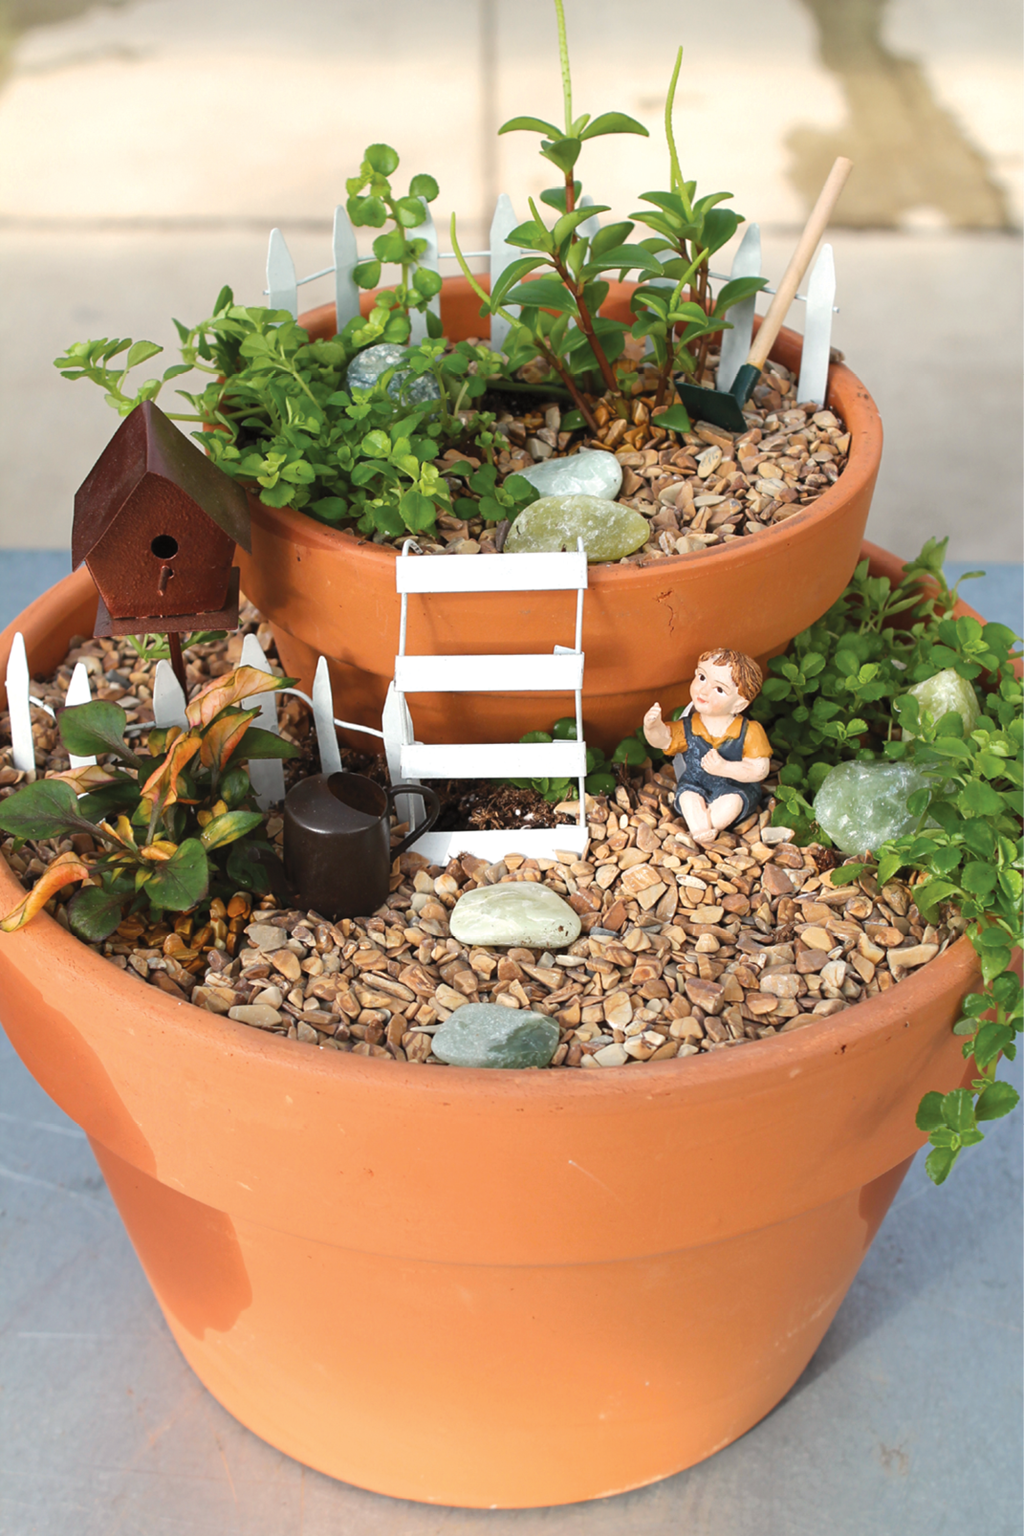 wilsons garden center uses a mix of supplier products and found objects to create realistic miniature garden scenes - Wilsons Garden Center